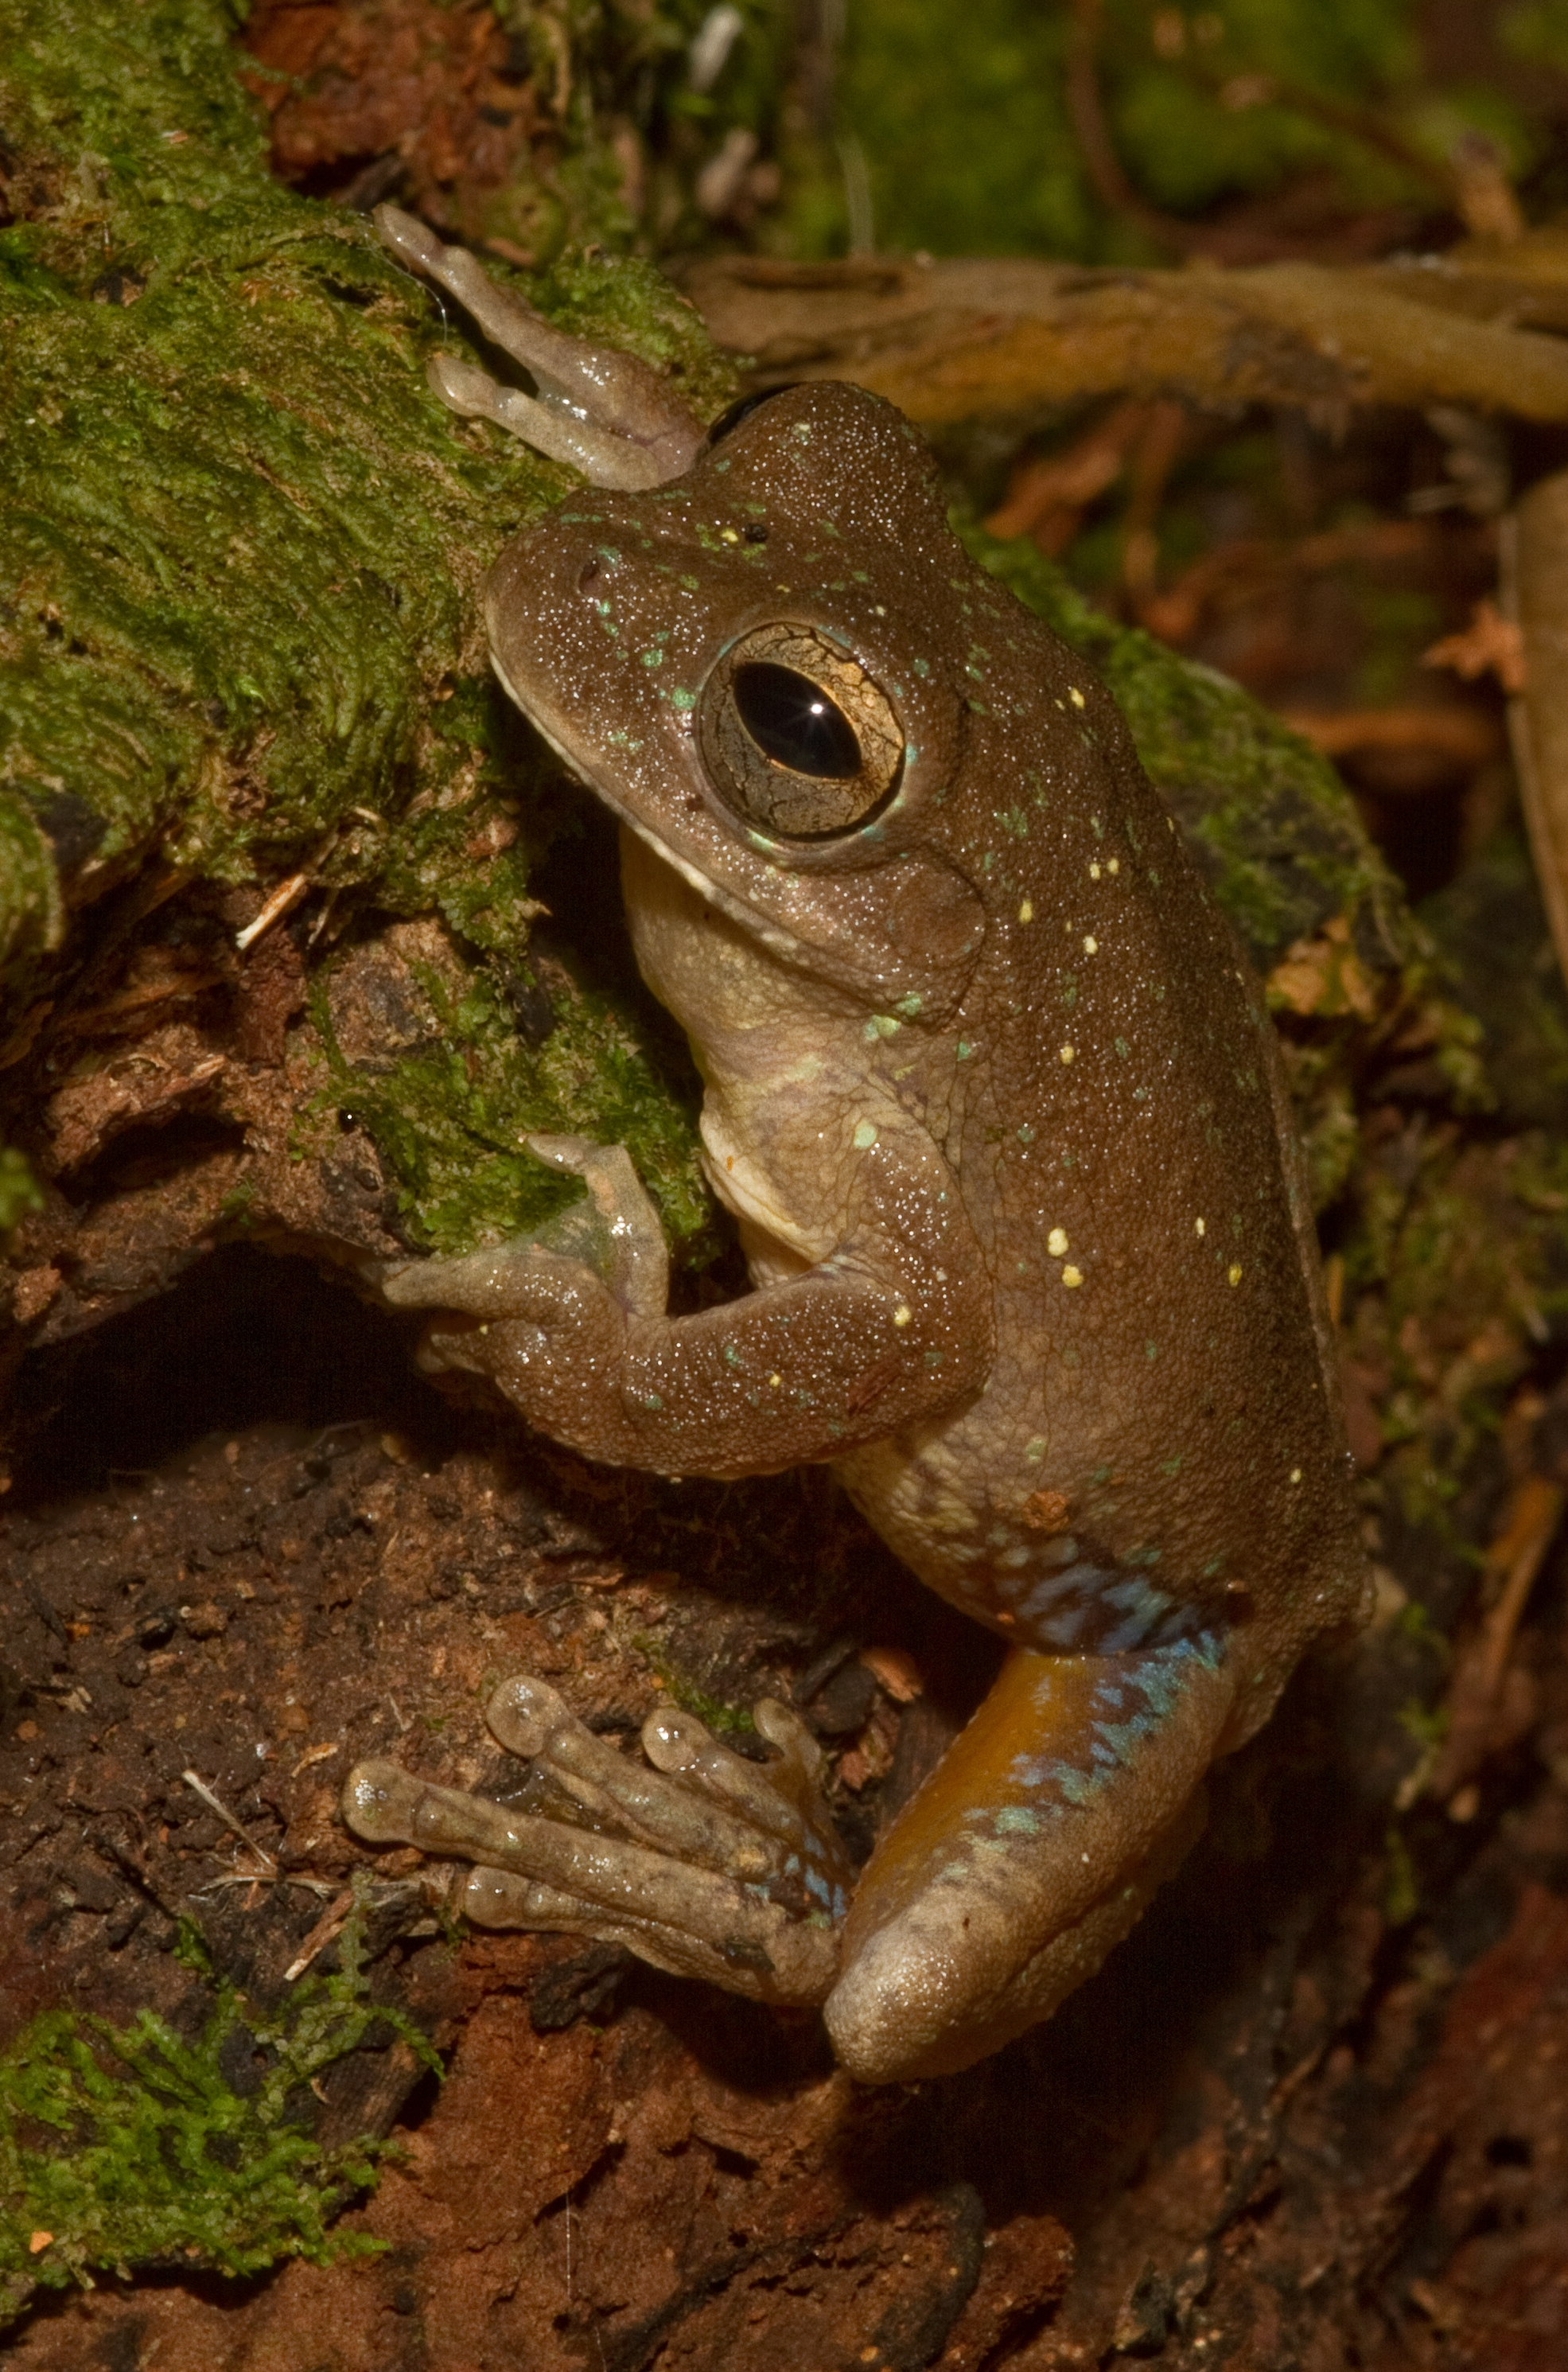 Panama cross-banded treefrog (Simlisca sila)